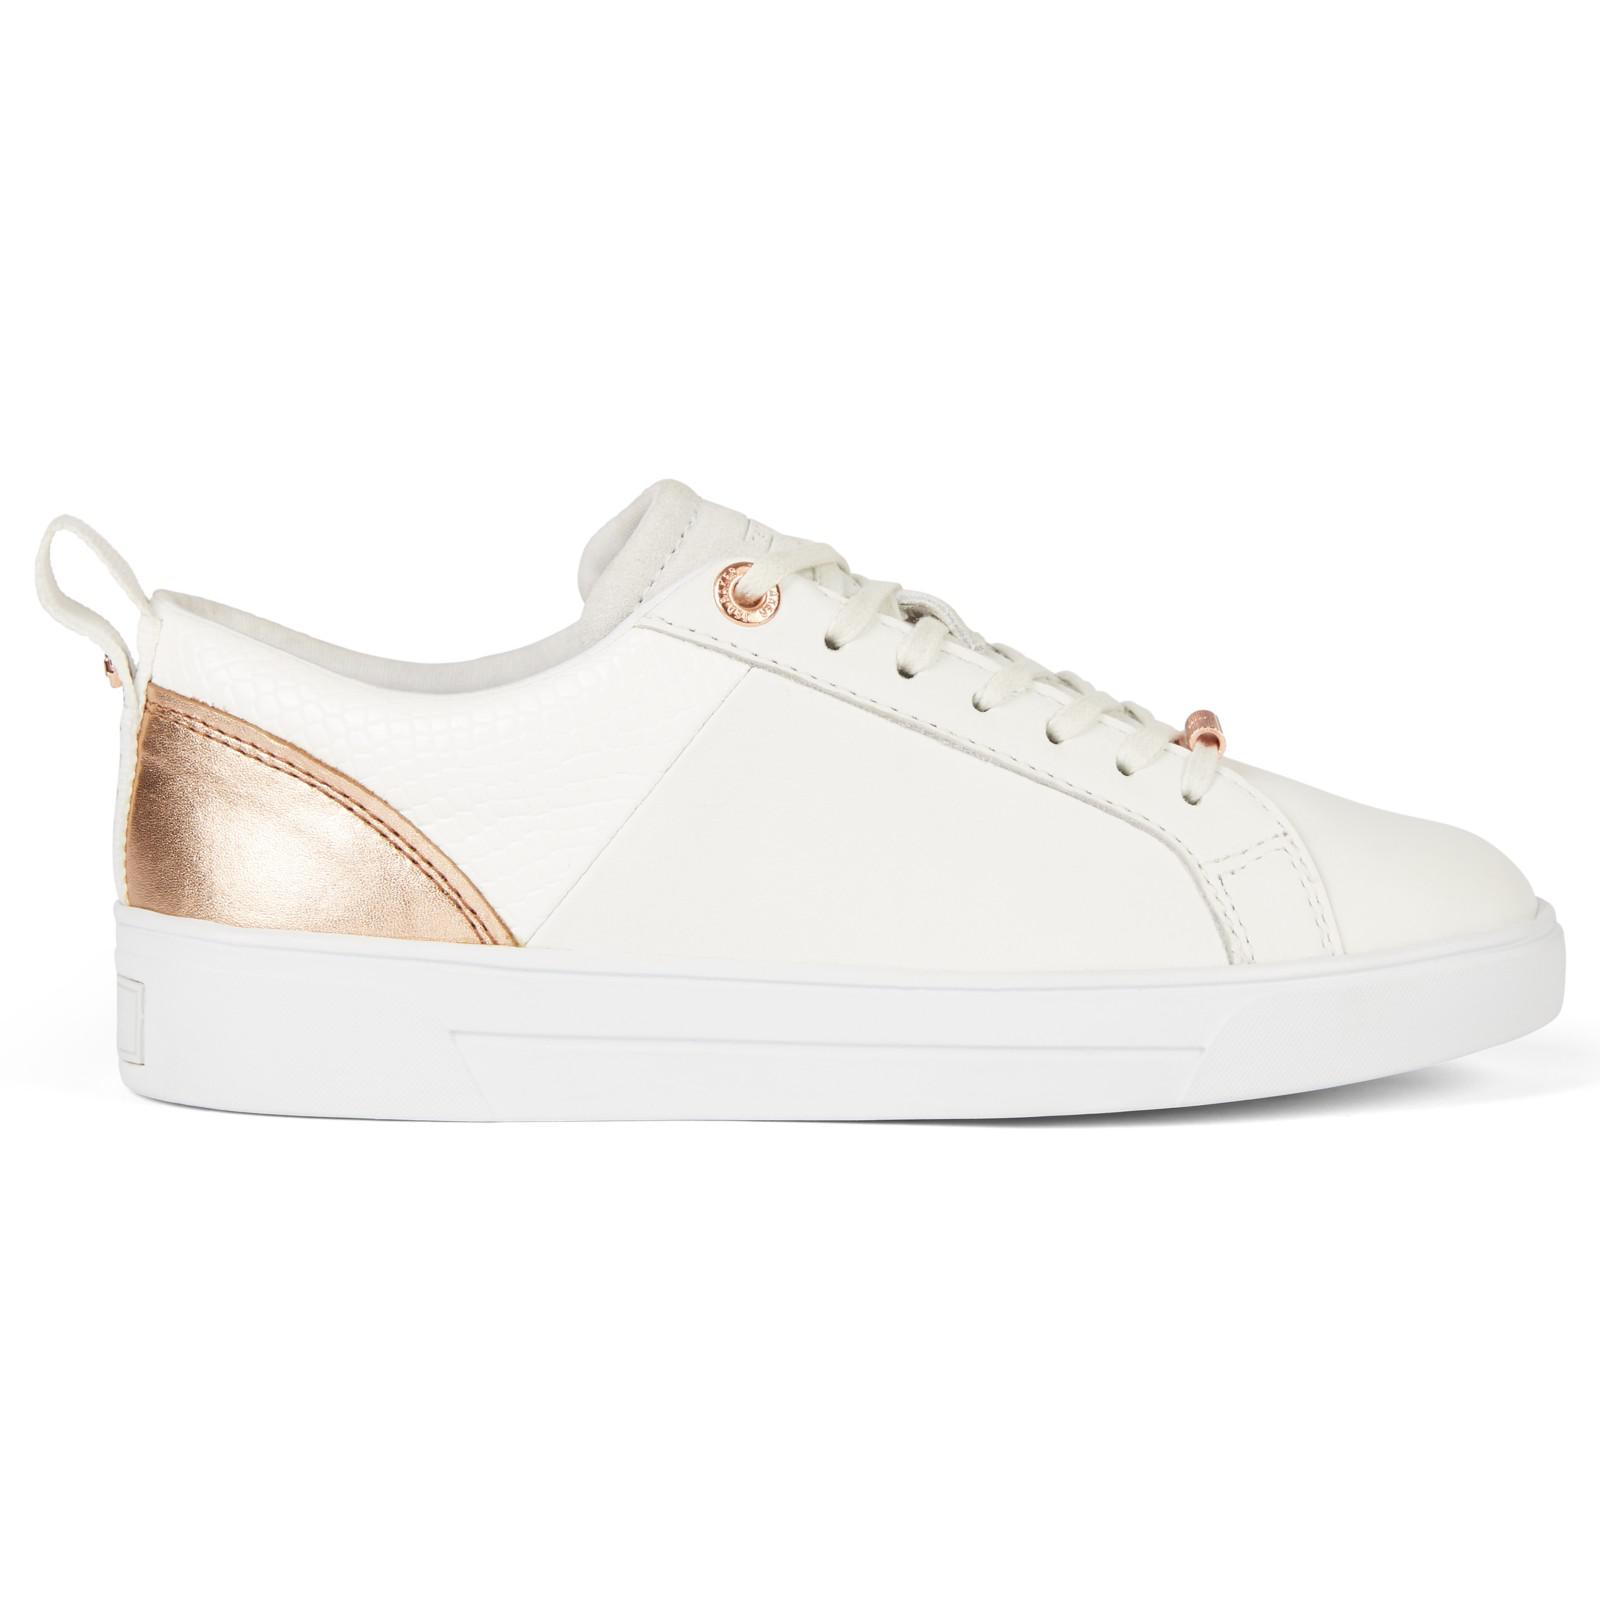 96c88bc46 Ted Baker Kulei Lace Up Trainers in White - Lyst